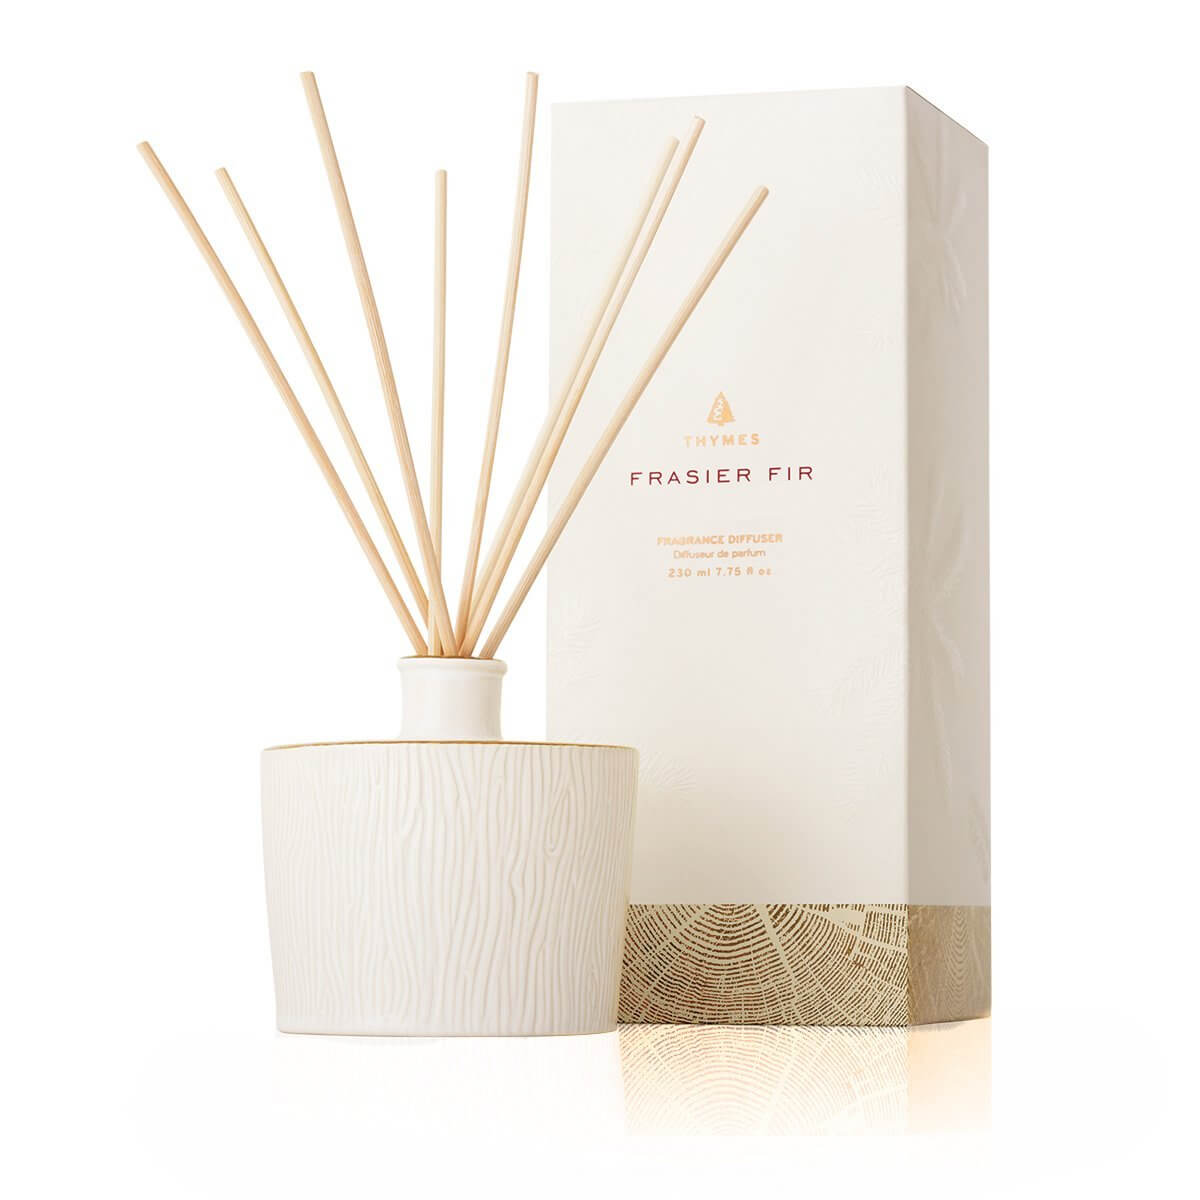 Thymes Frazier Fir Ceramic Reed Diffuser